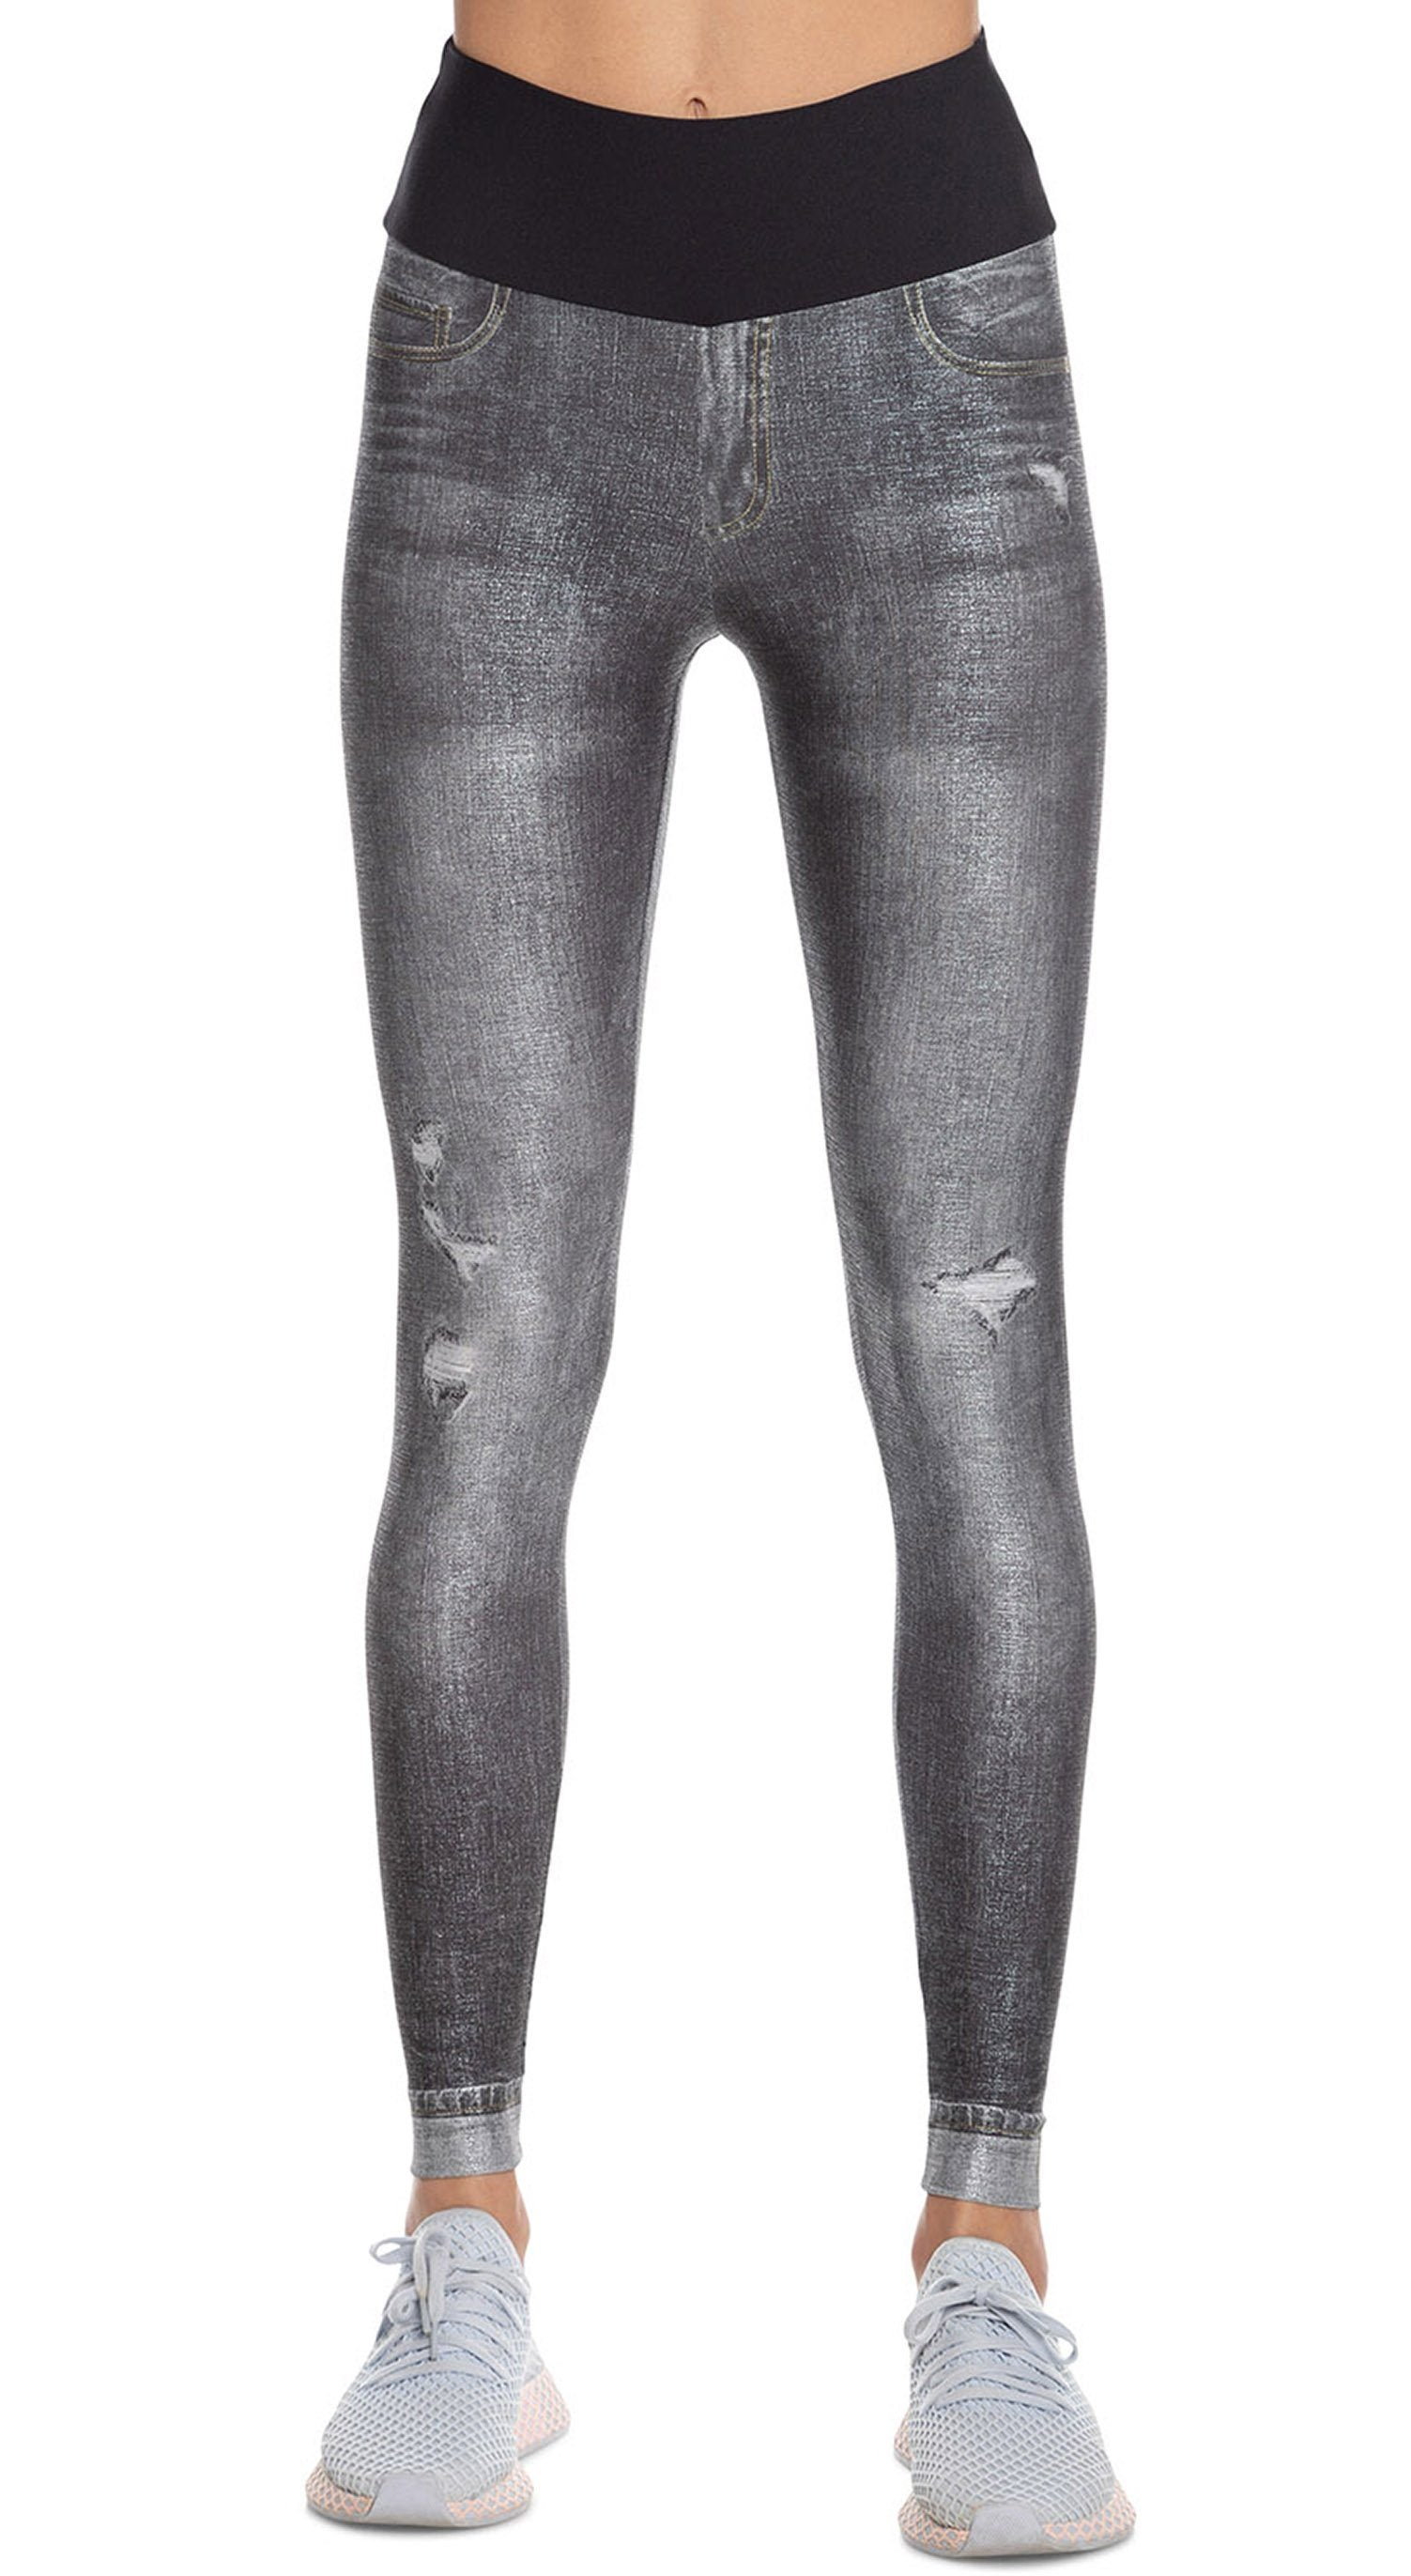 Brazilian Fake Jeans Legging - Star Black Jeans Legging